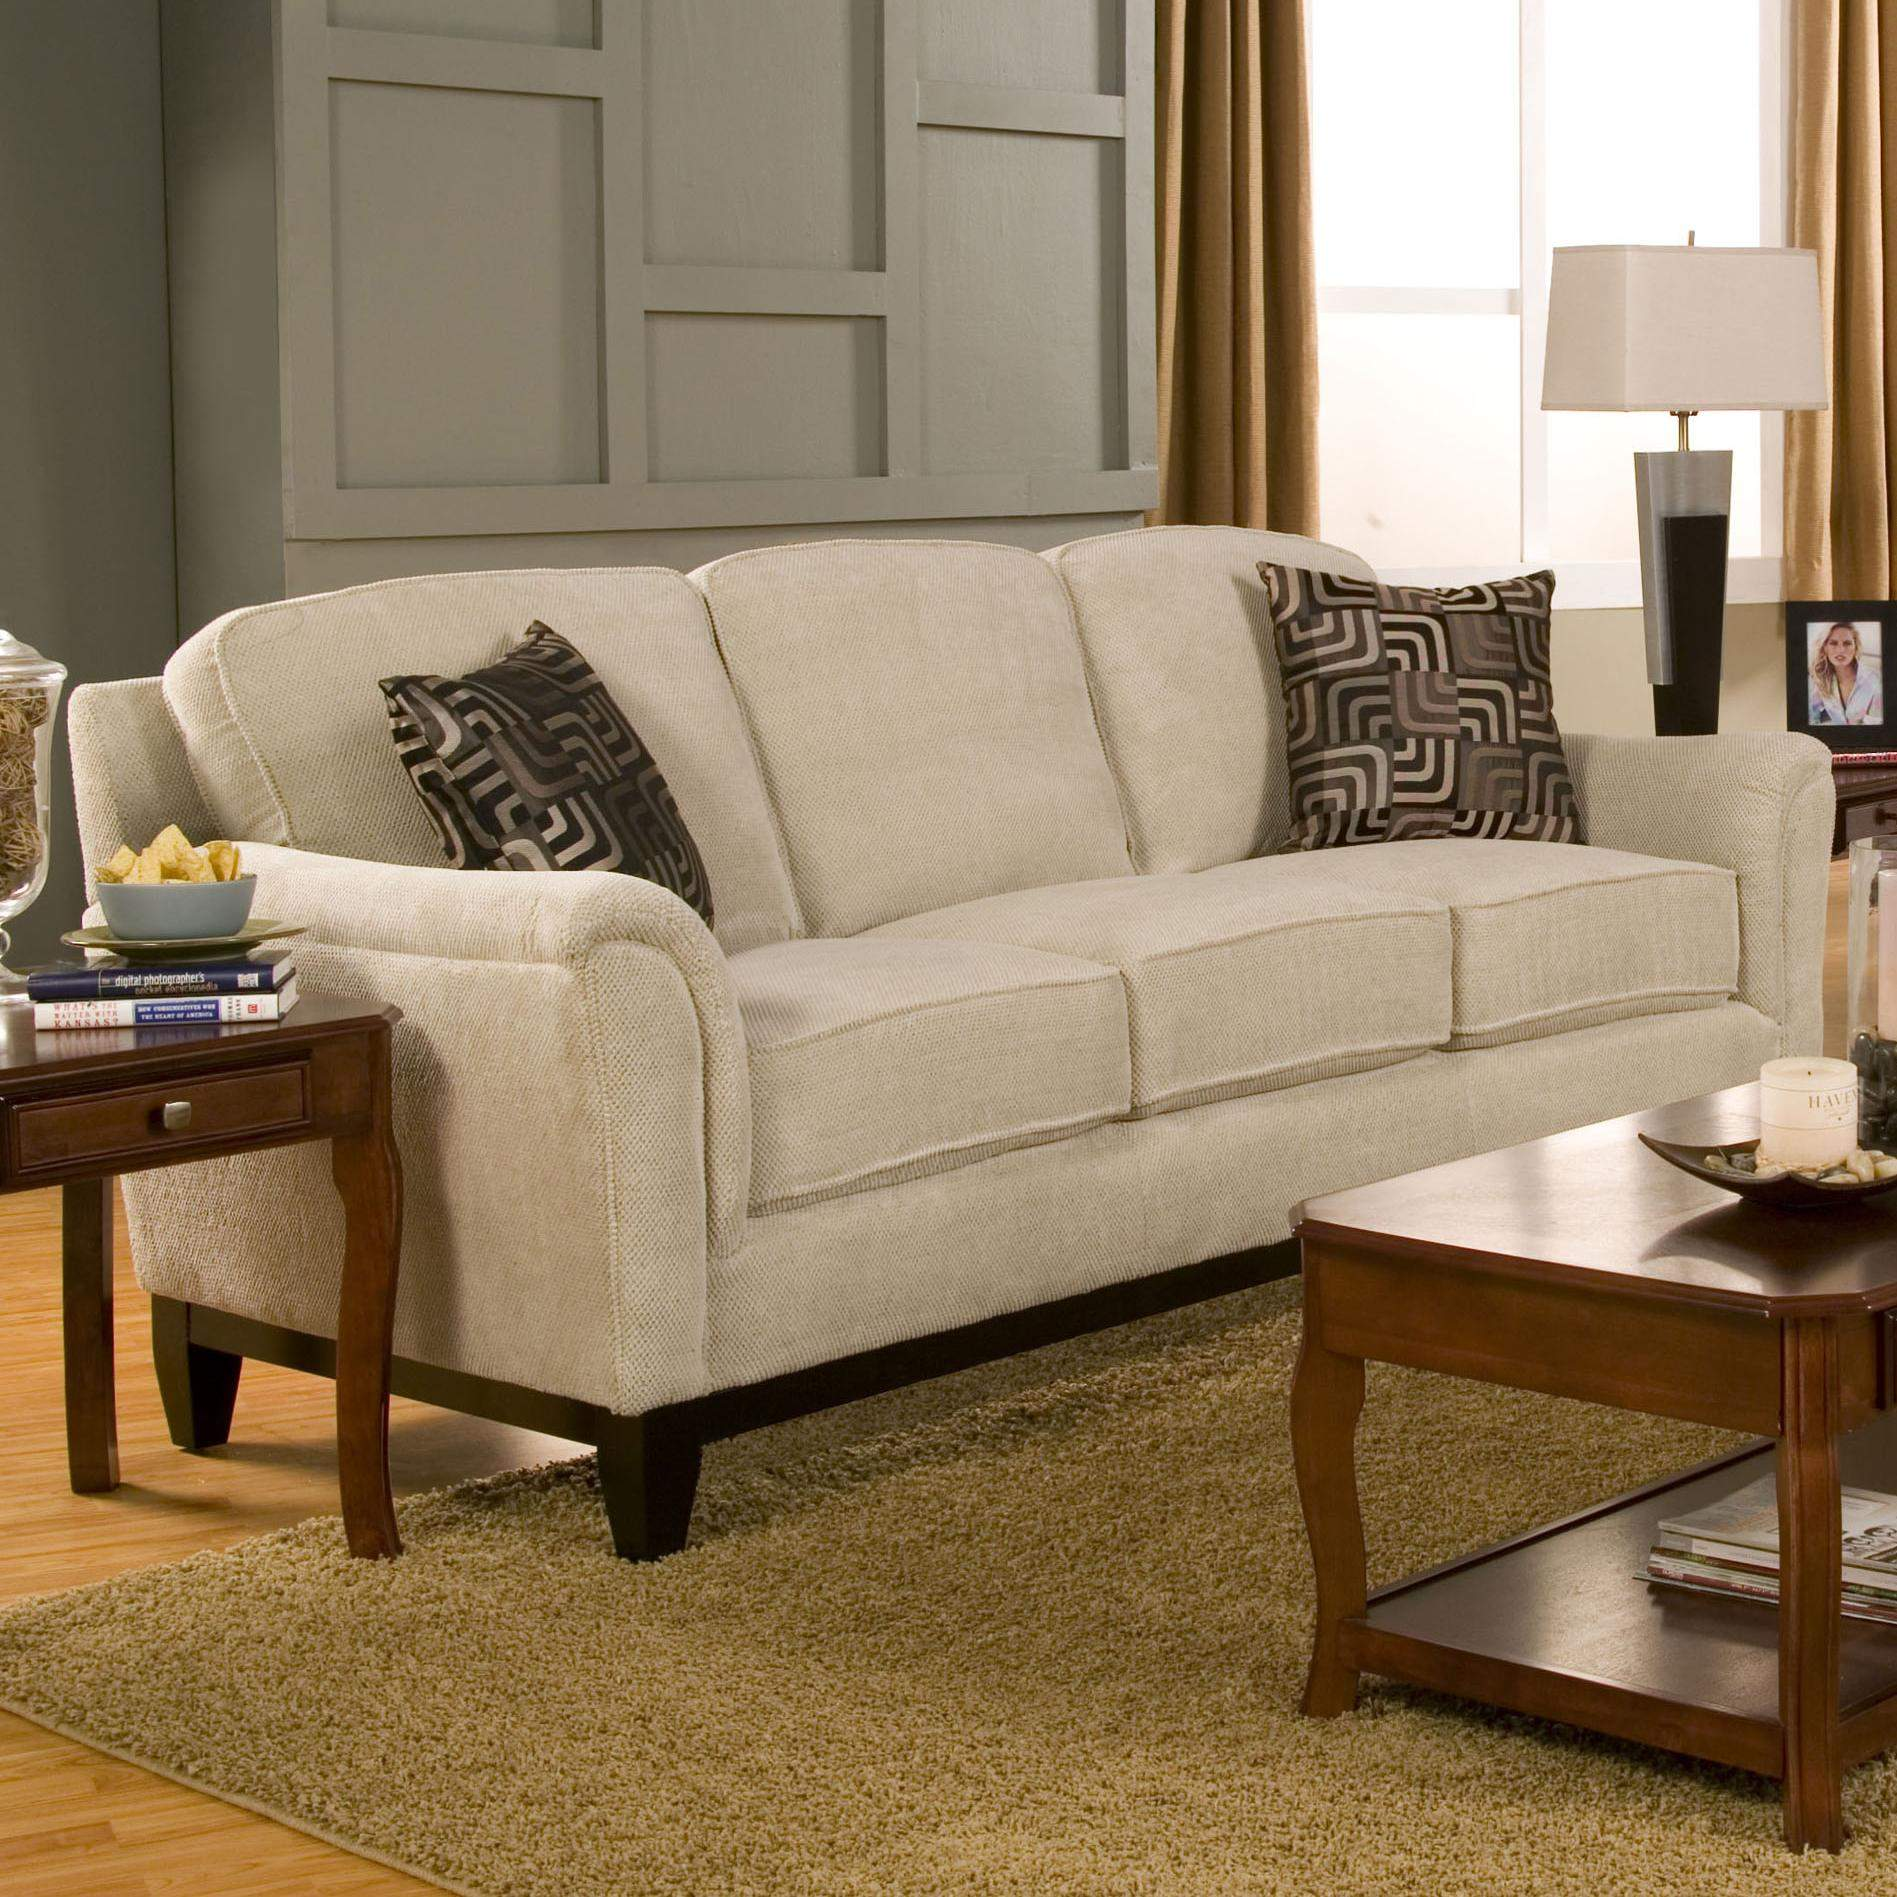 sofa wood frame exposed uk good quality bed singapore carver with base furniture at